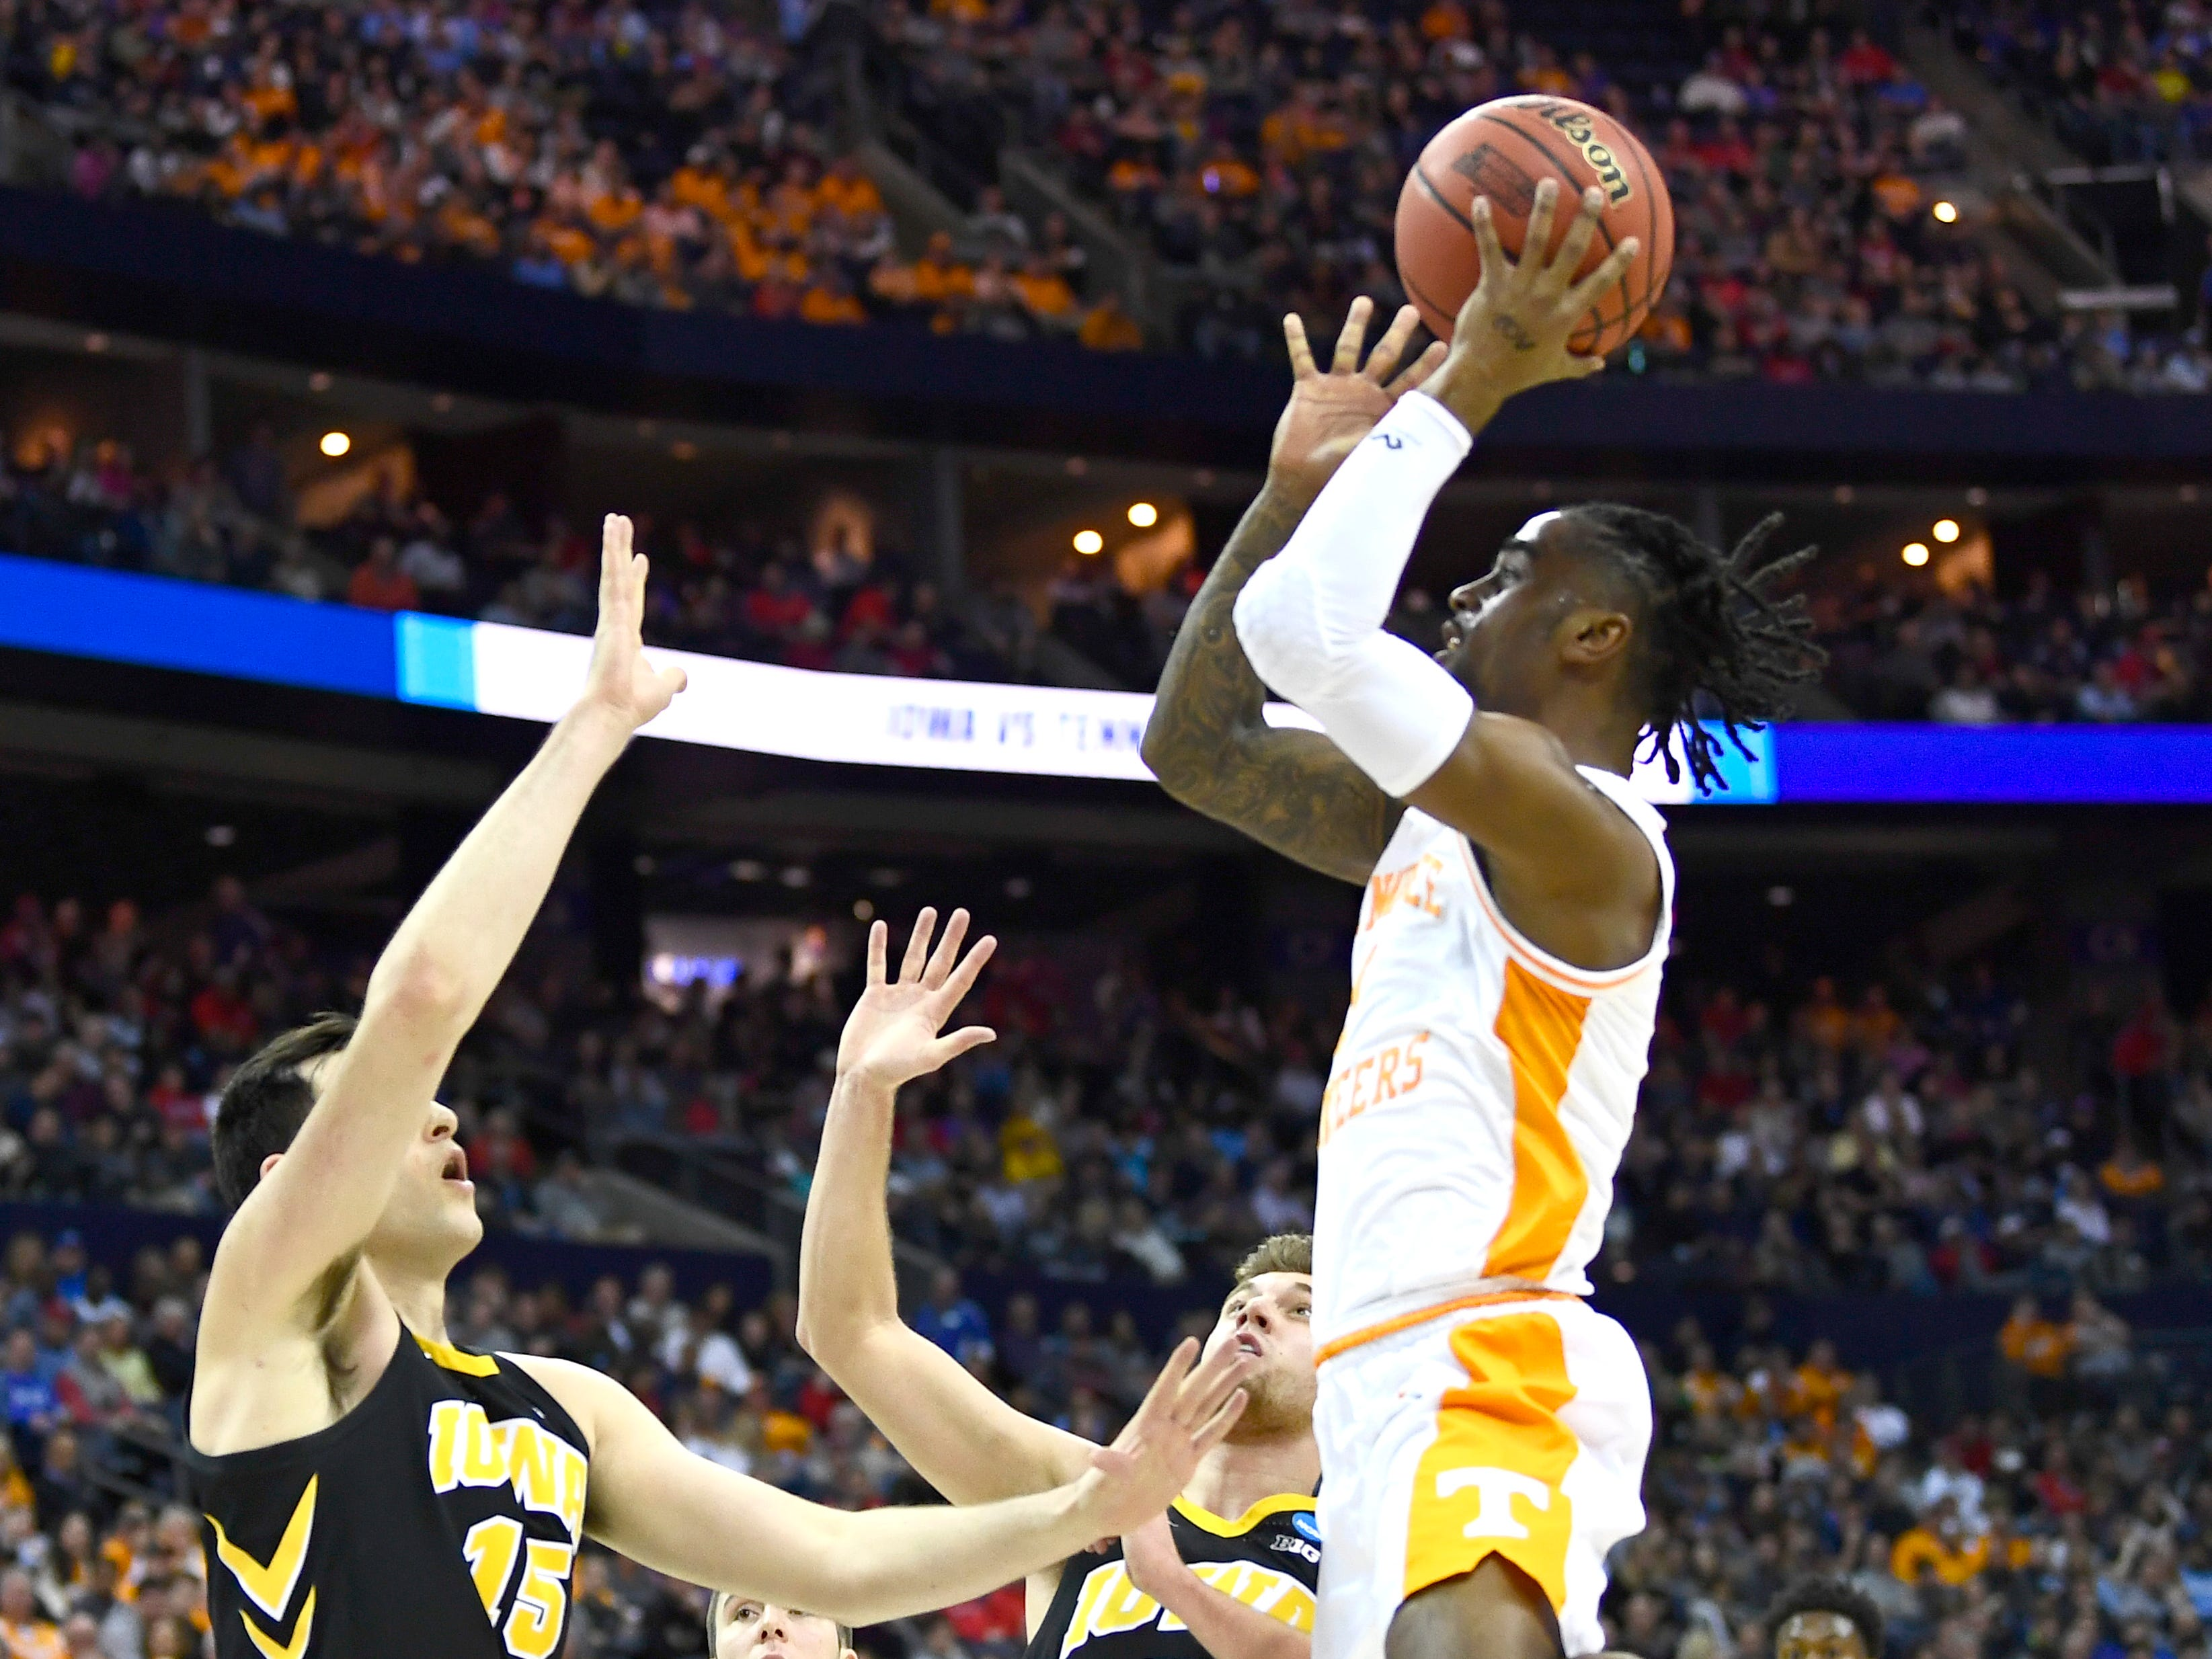 Tennessee guard Jordan Bone (0) shoots over Iowa forward Ryan Kriener (15) and Iowa guard Jordan Bohannon (3) during the first half in the second round of the NCAA Tournament at Nationwide Arena in Columbus, Ohio, Sunday, March 24, 2019.